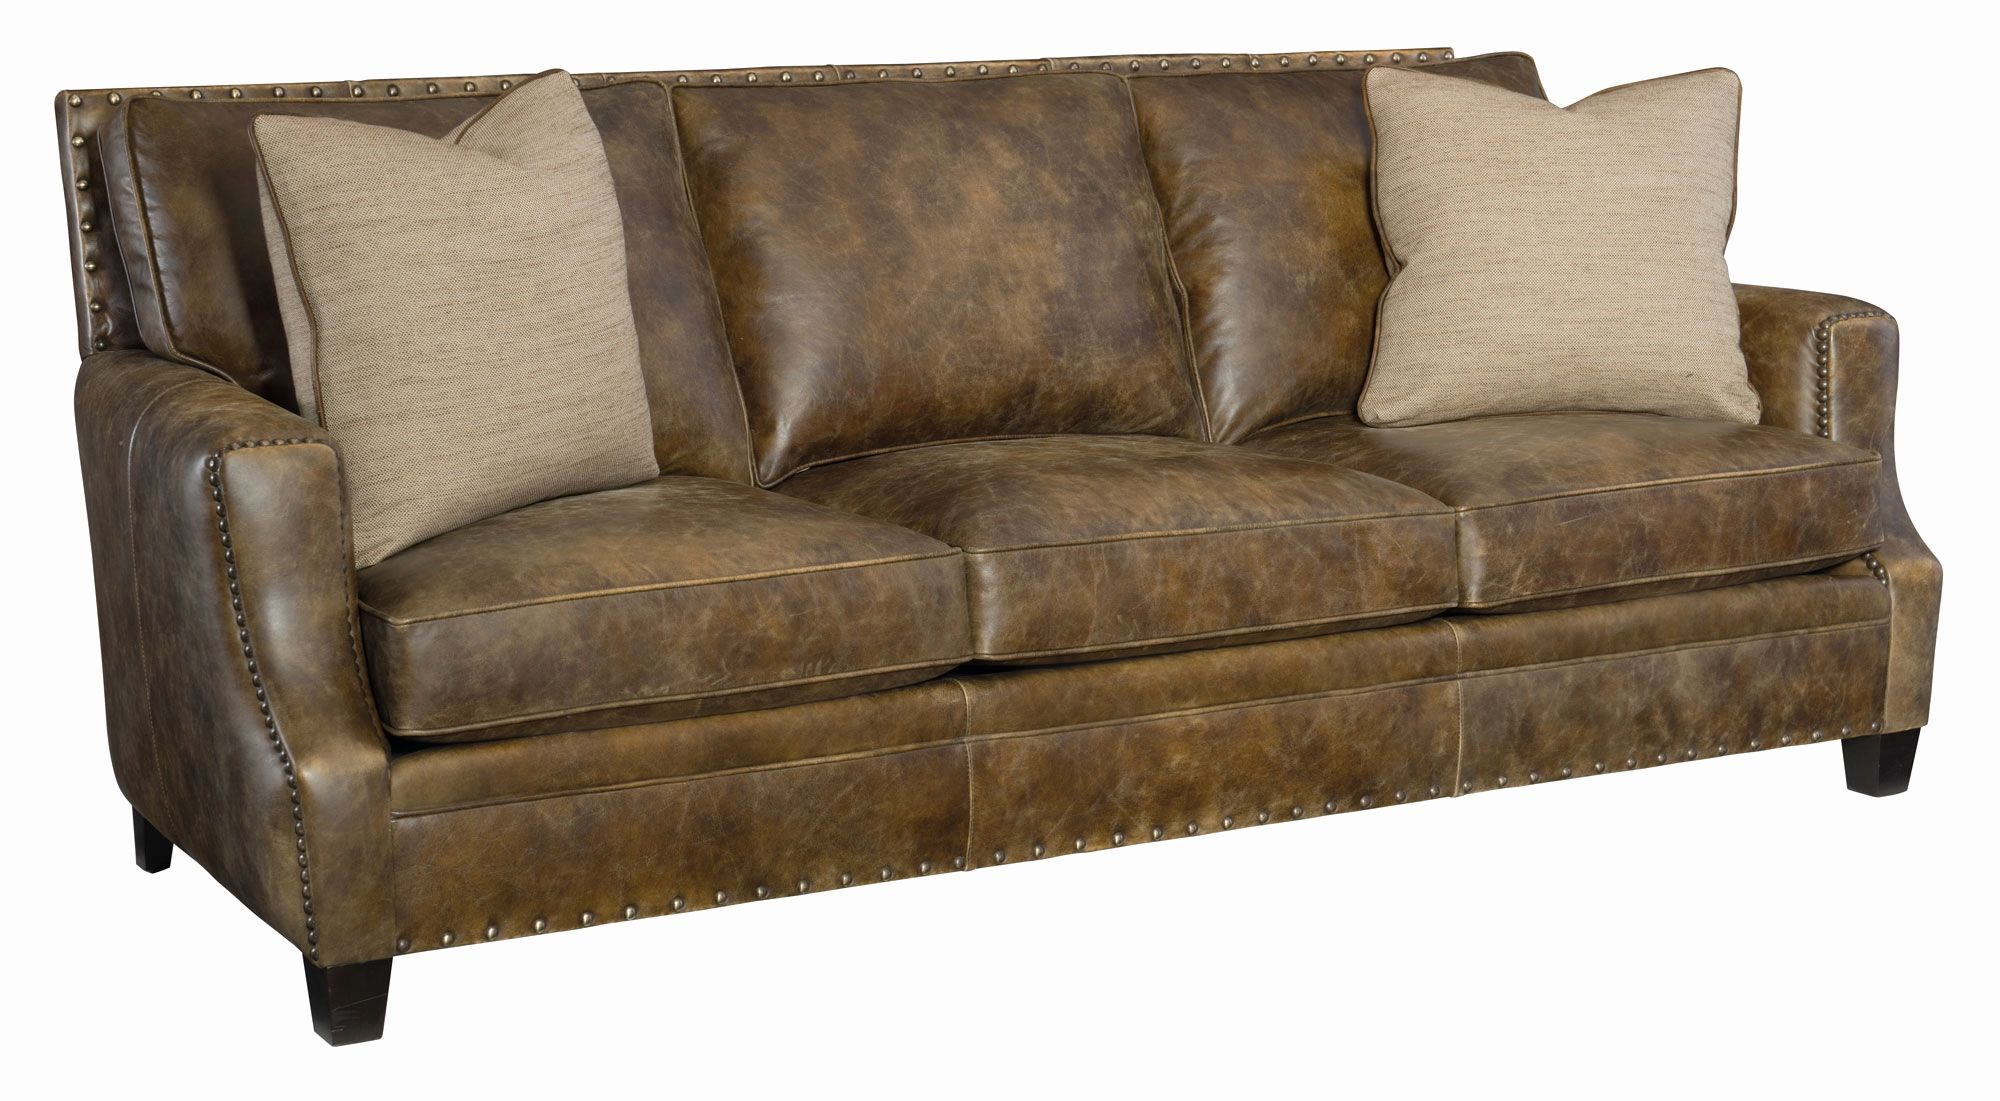 Groovy Awesome Bernhardt Leather Sofa Pictures Bernhardt Leather Download Free Architecture Designs Sospemadebymaigaardcom